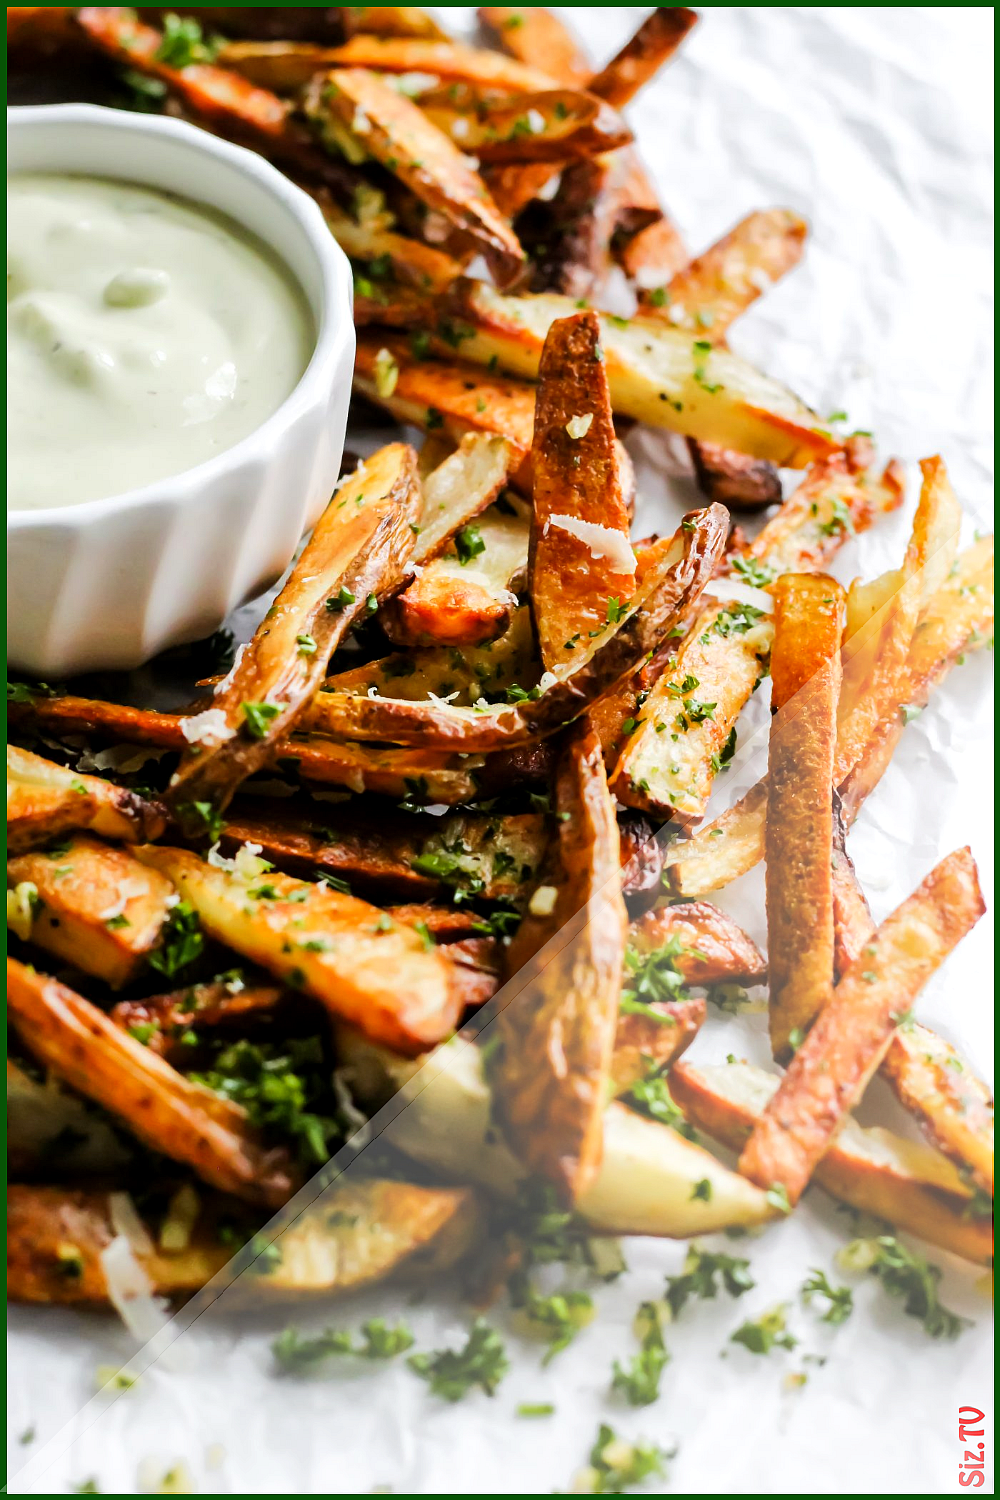 Baked Garlic Herb Fries with Avocado Ranch Baked Garlic Herb Fries with Avocado Ranch Paul pollieve